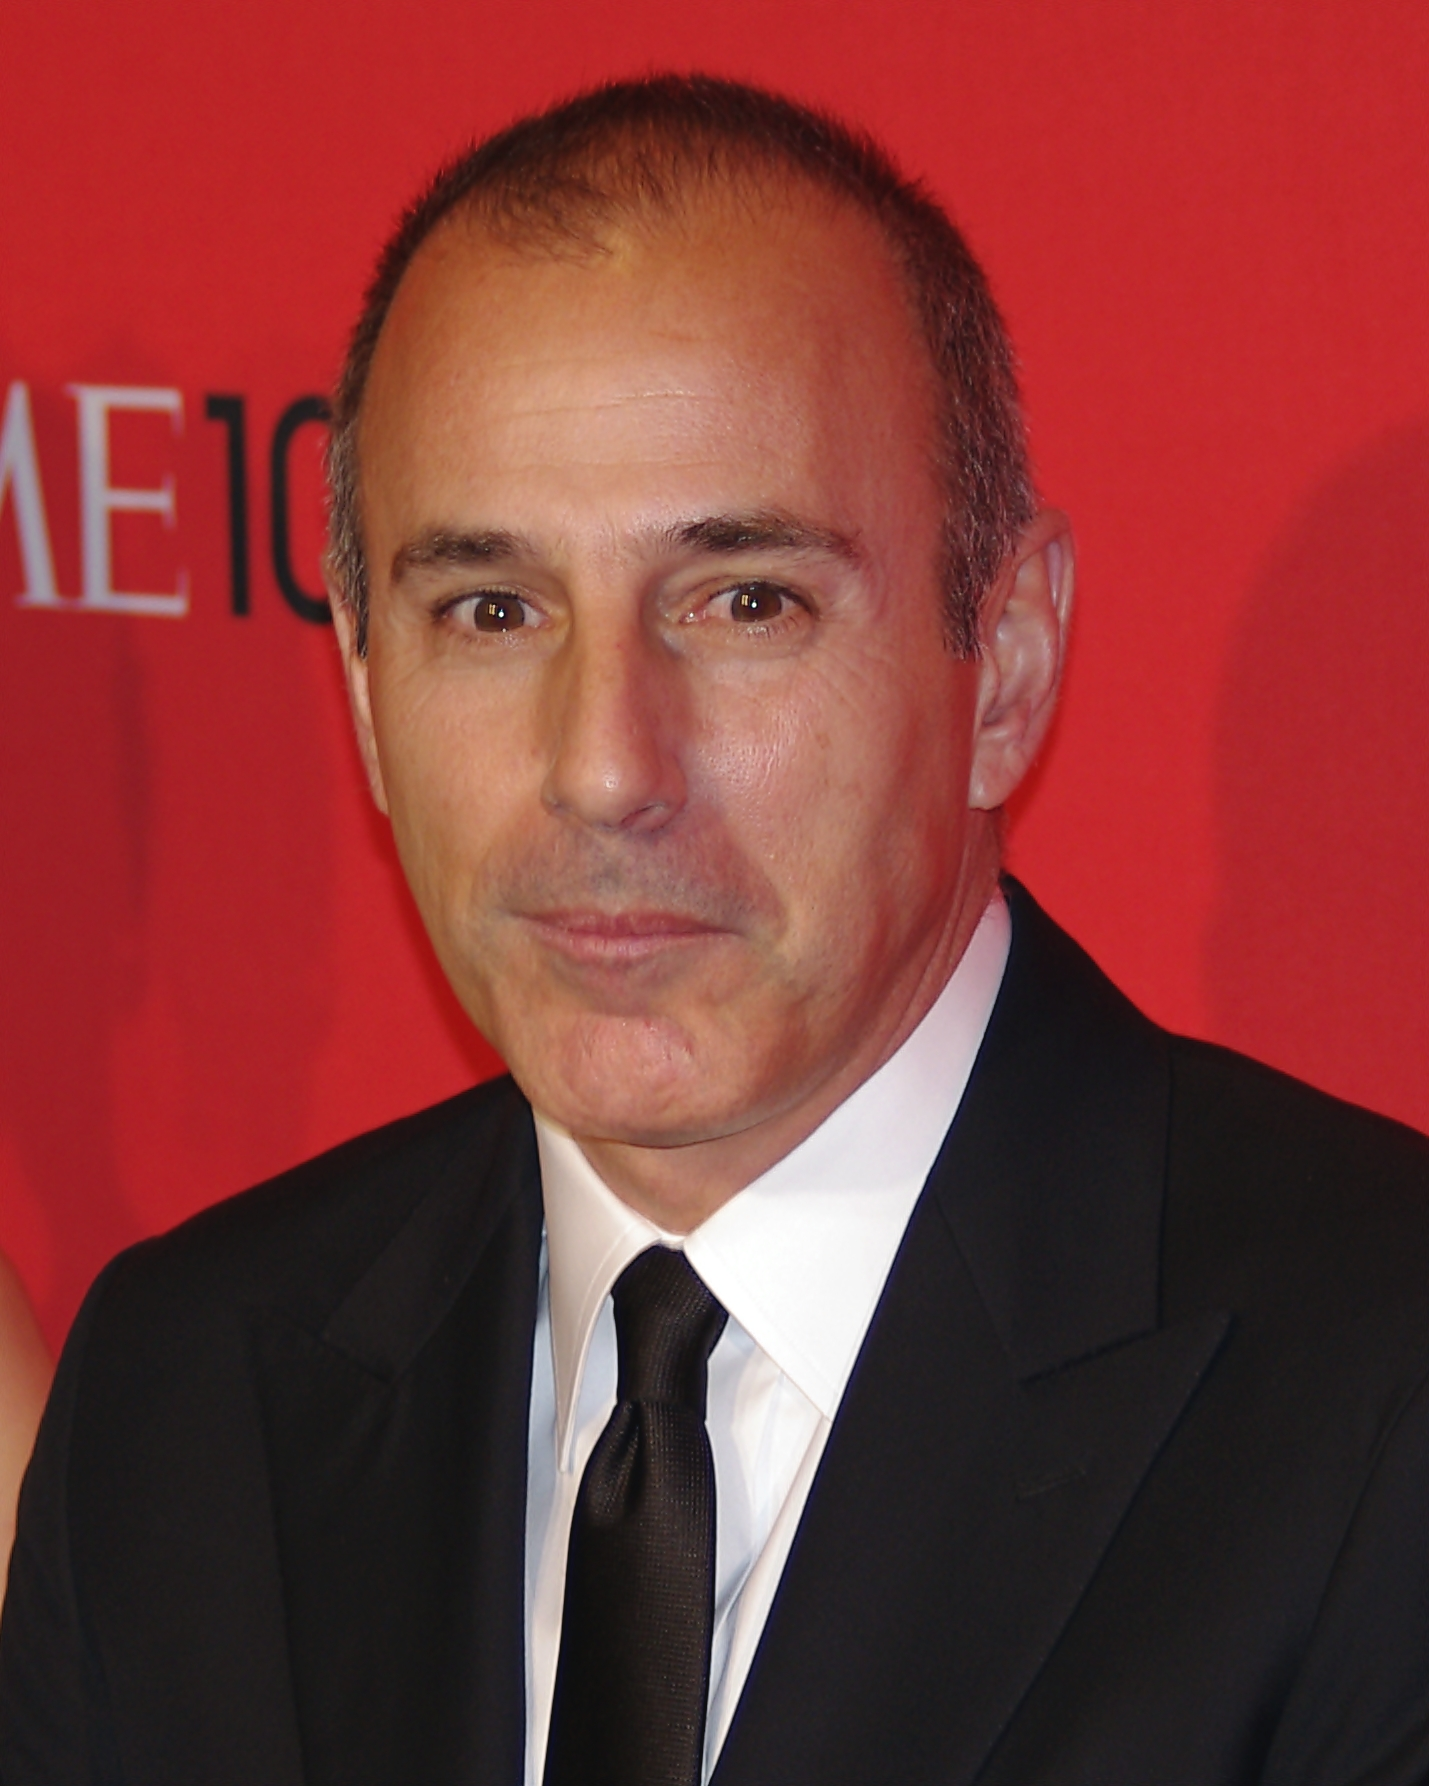 The 60-year old son of father Robert Lauer and mother Marilyn Lauer, 180 cm tall Matt Lauer in 2018 photo